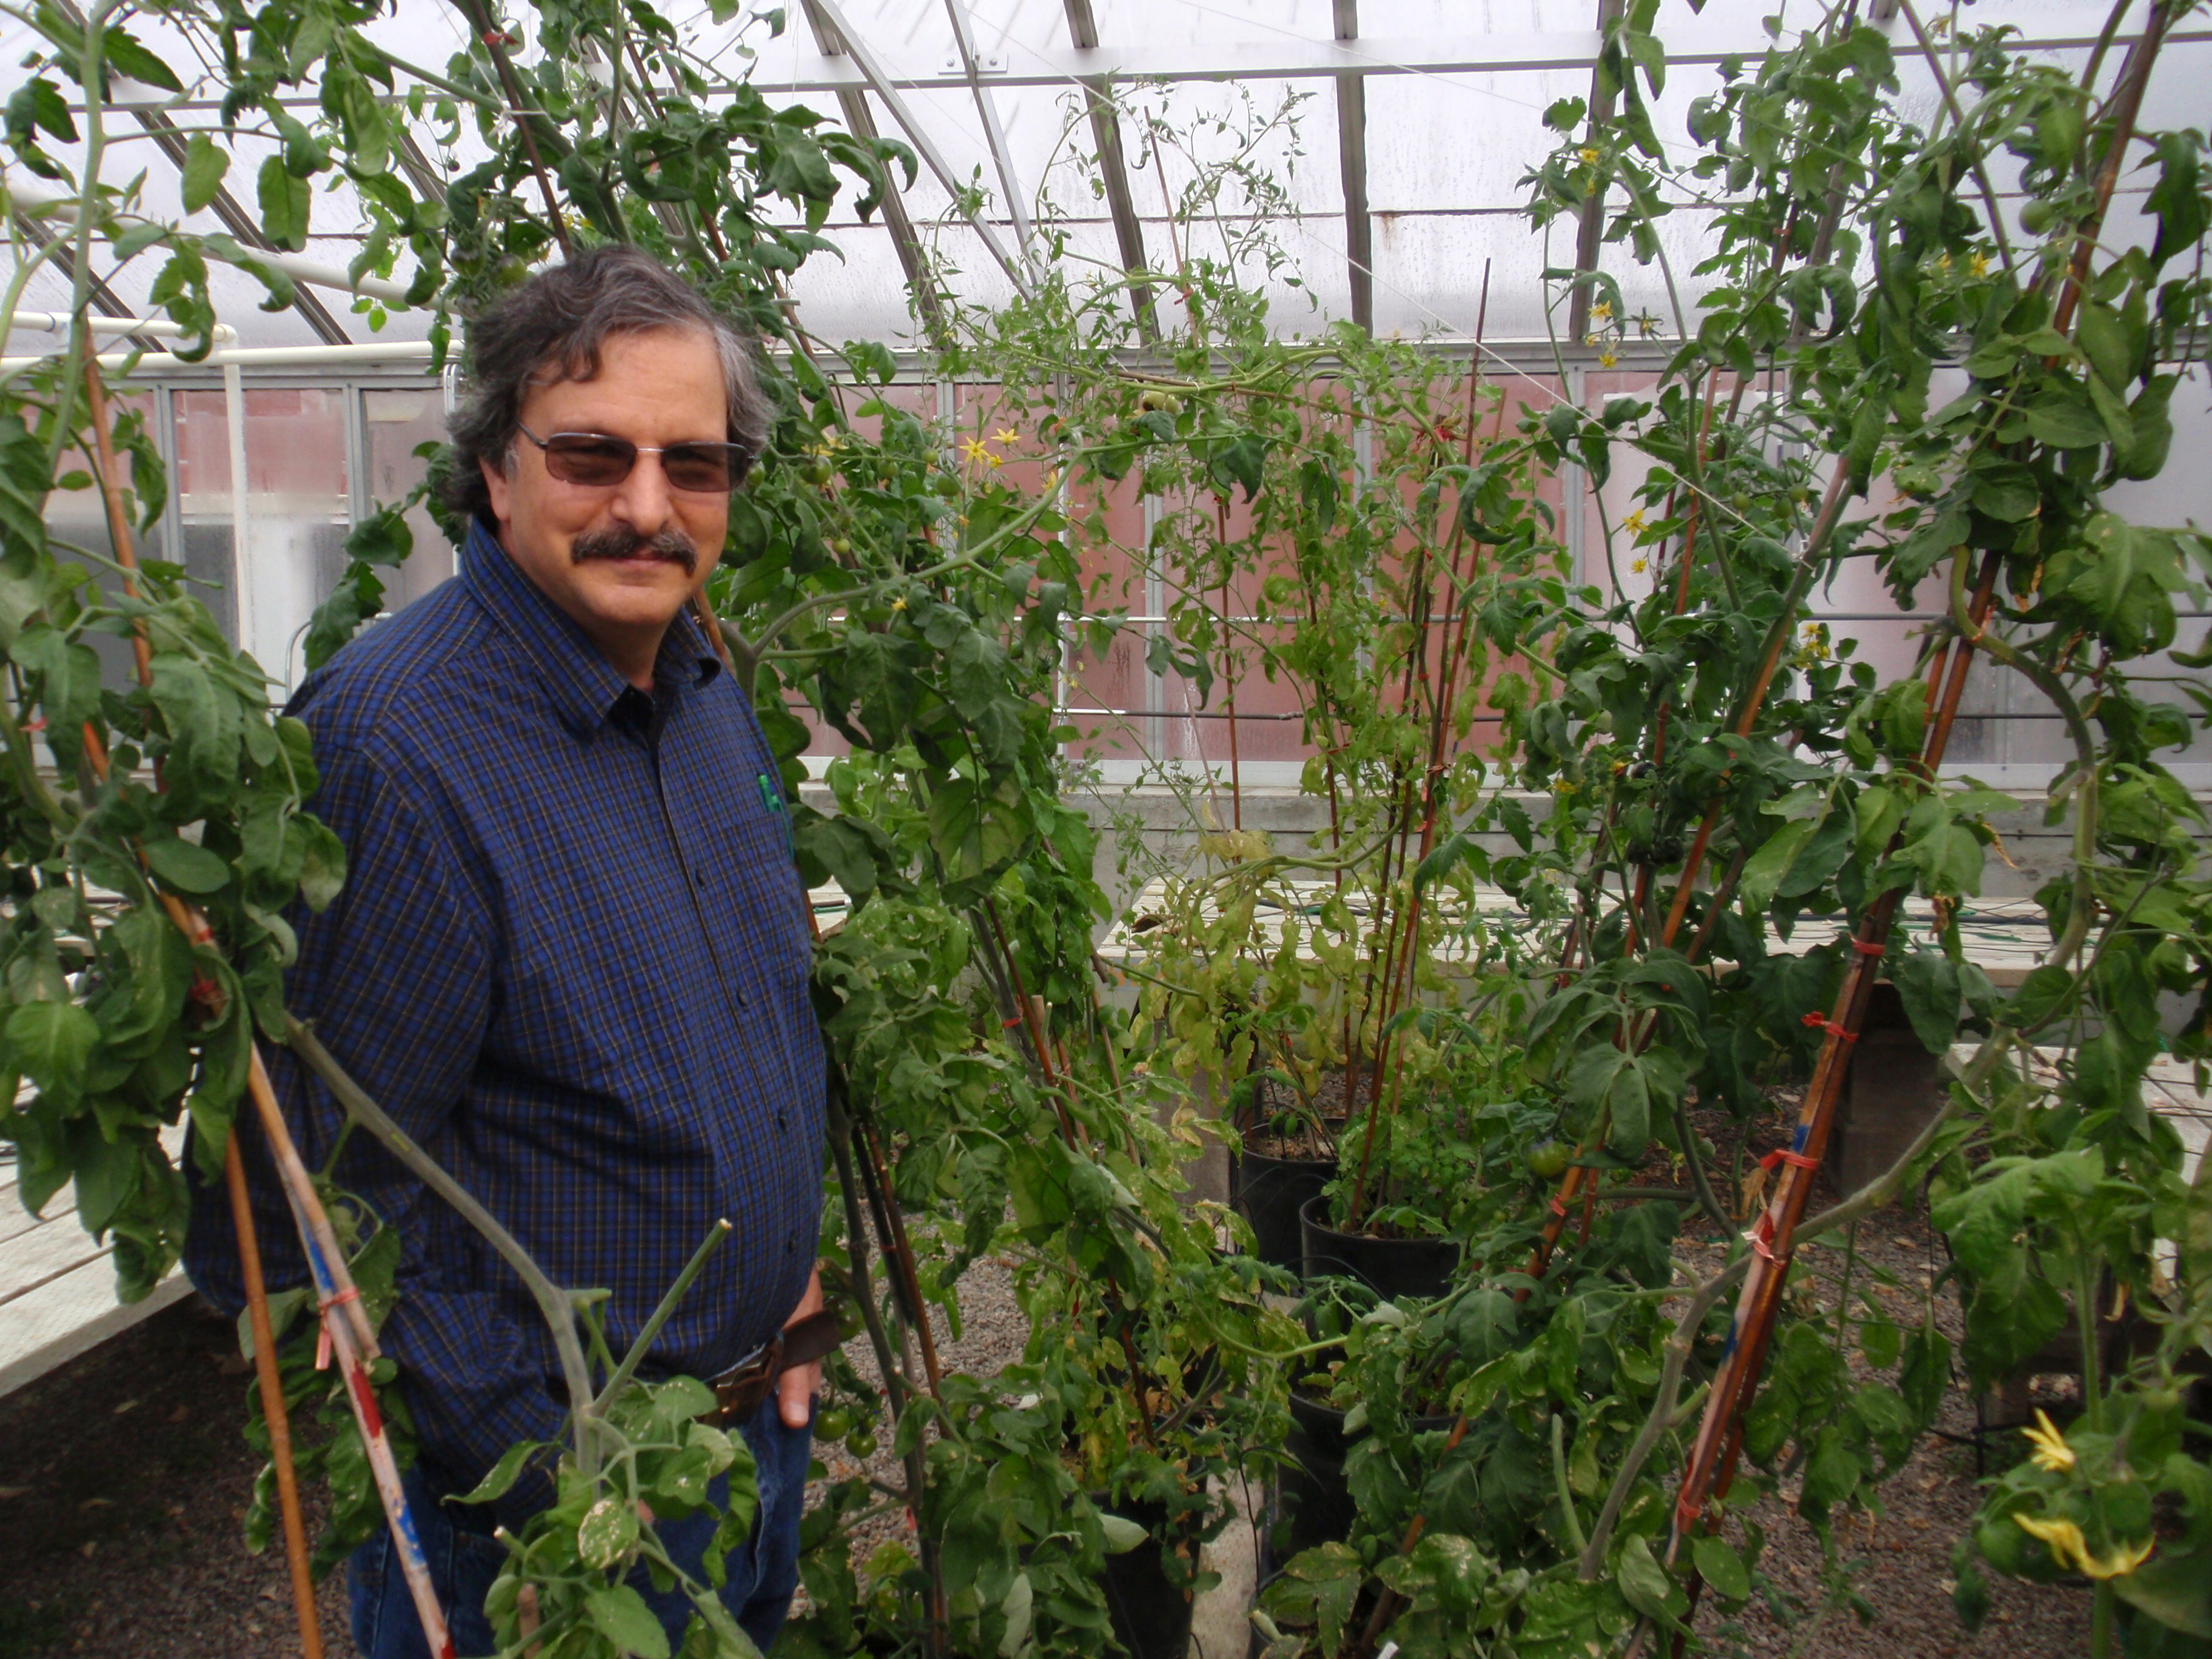 OSU plant breeder Jim Myers examines peppers in a greenhouse on the Corvallis campus. (Photo: Tom Banse for VOA)